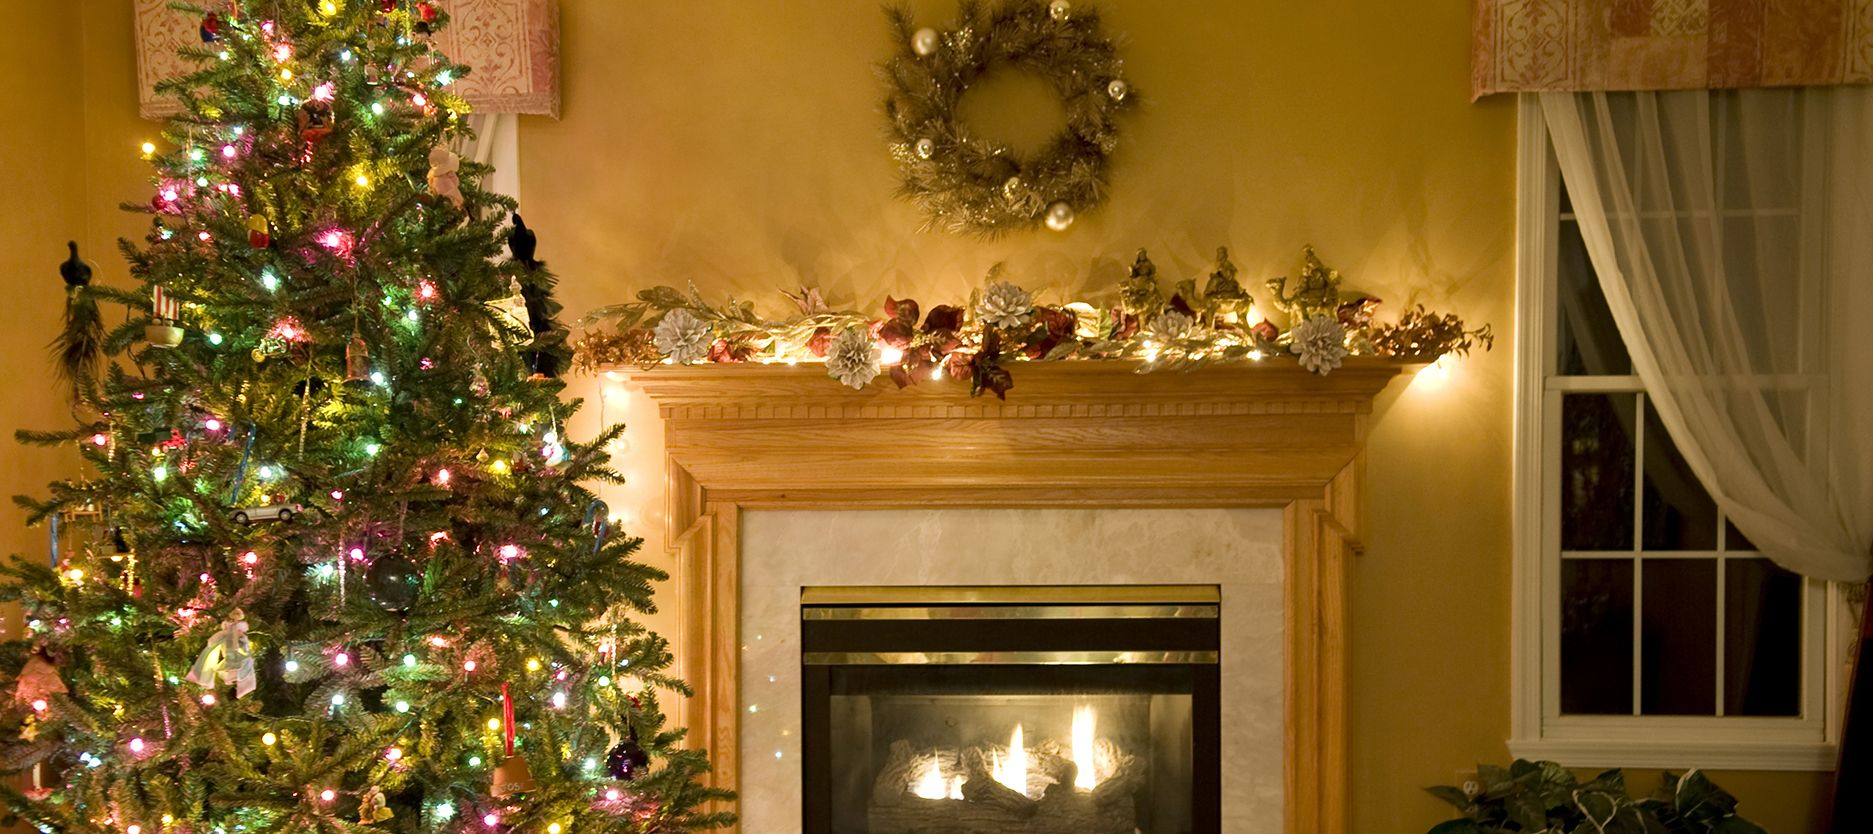 Bring The Spirit of Christmas Into Your Home With These Joyful Wall Paint Colours